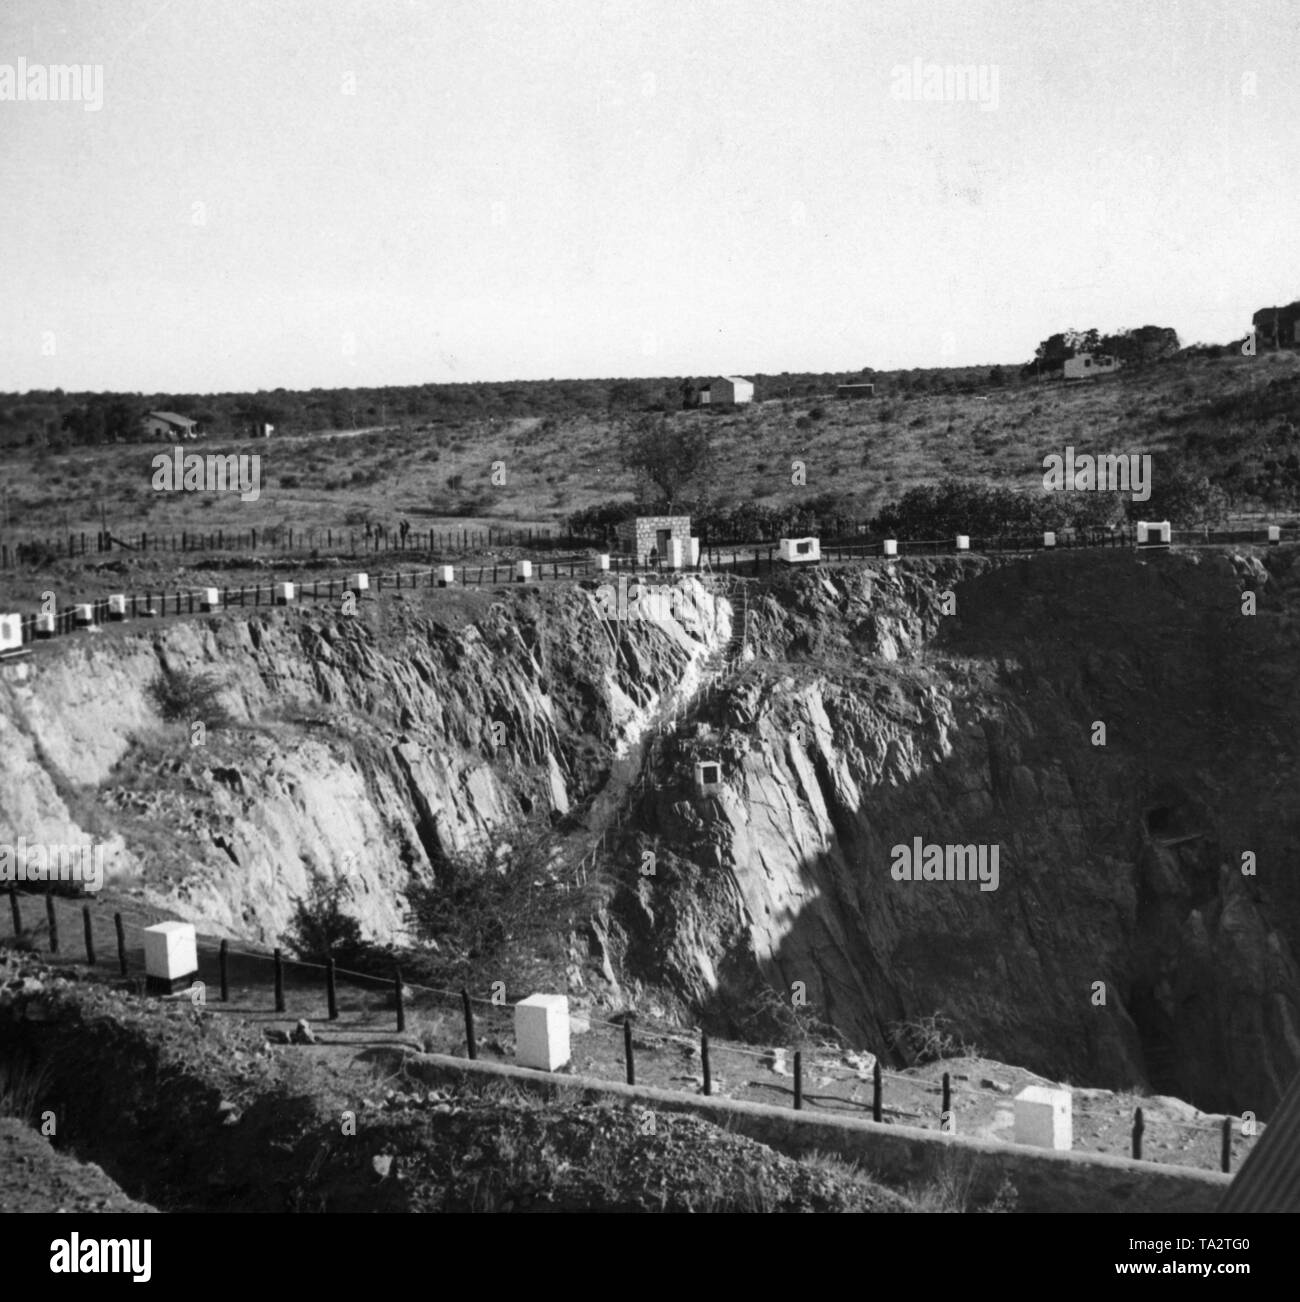 The mine at Abenab on the territory of the former colony of German South West Africa was in operation from 1921 to 1958 and was used to mine vanadium and zinc. - Stock Image